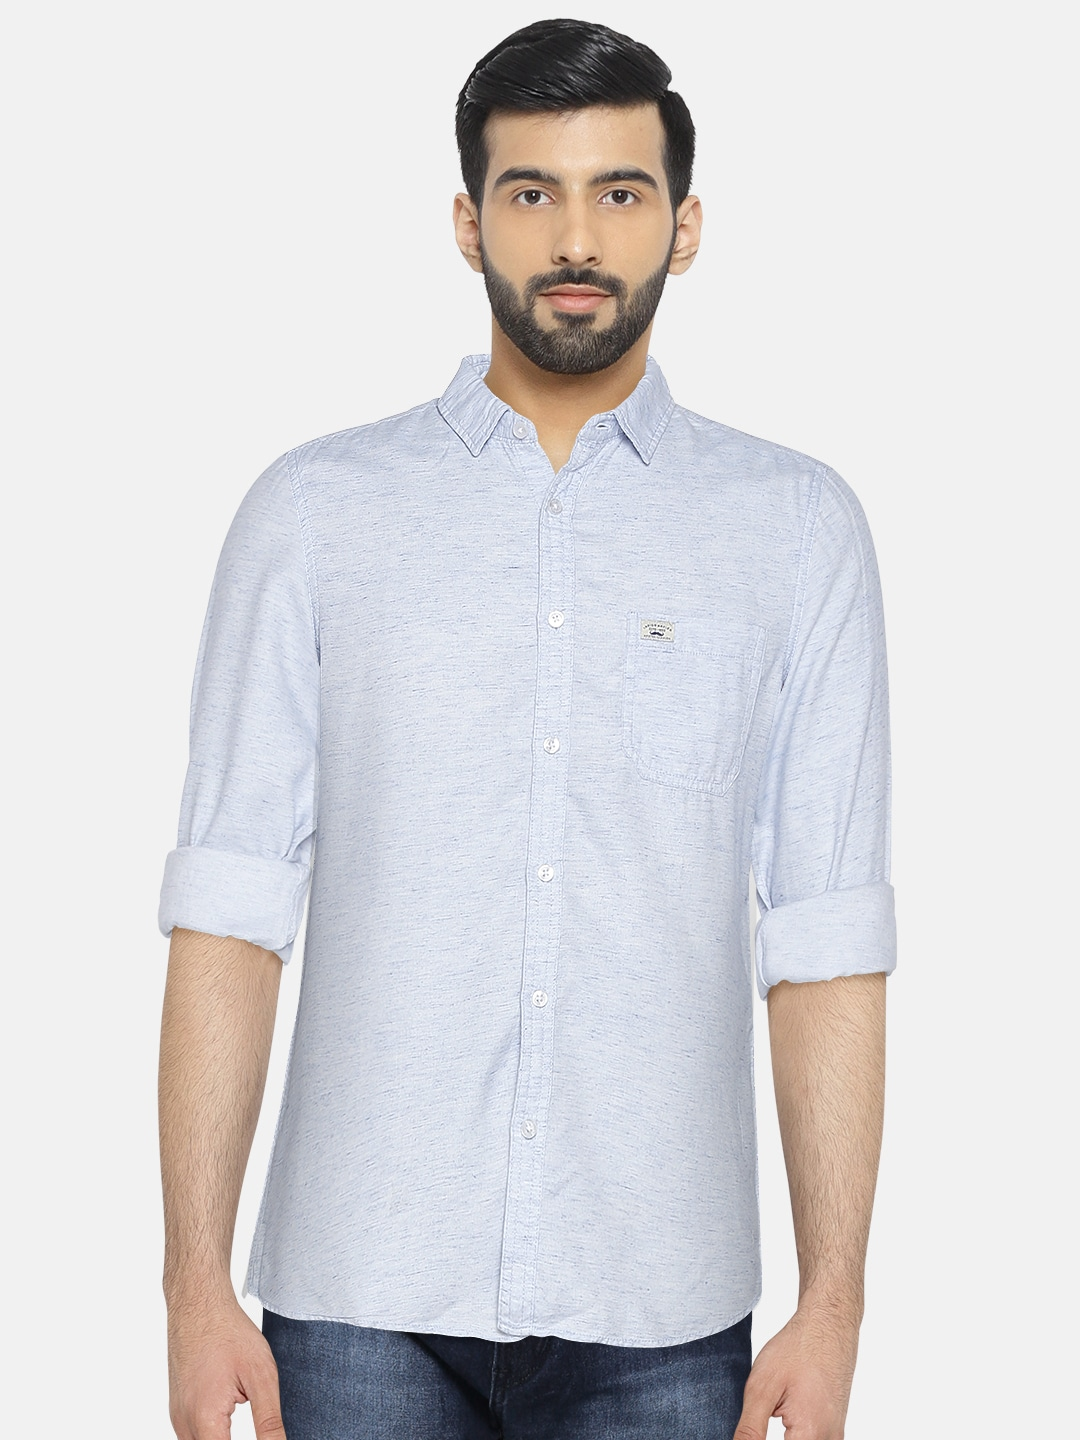 870420f9d5 Casual Shirts for Men - Buy Men Casual Shirt Online in India